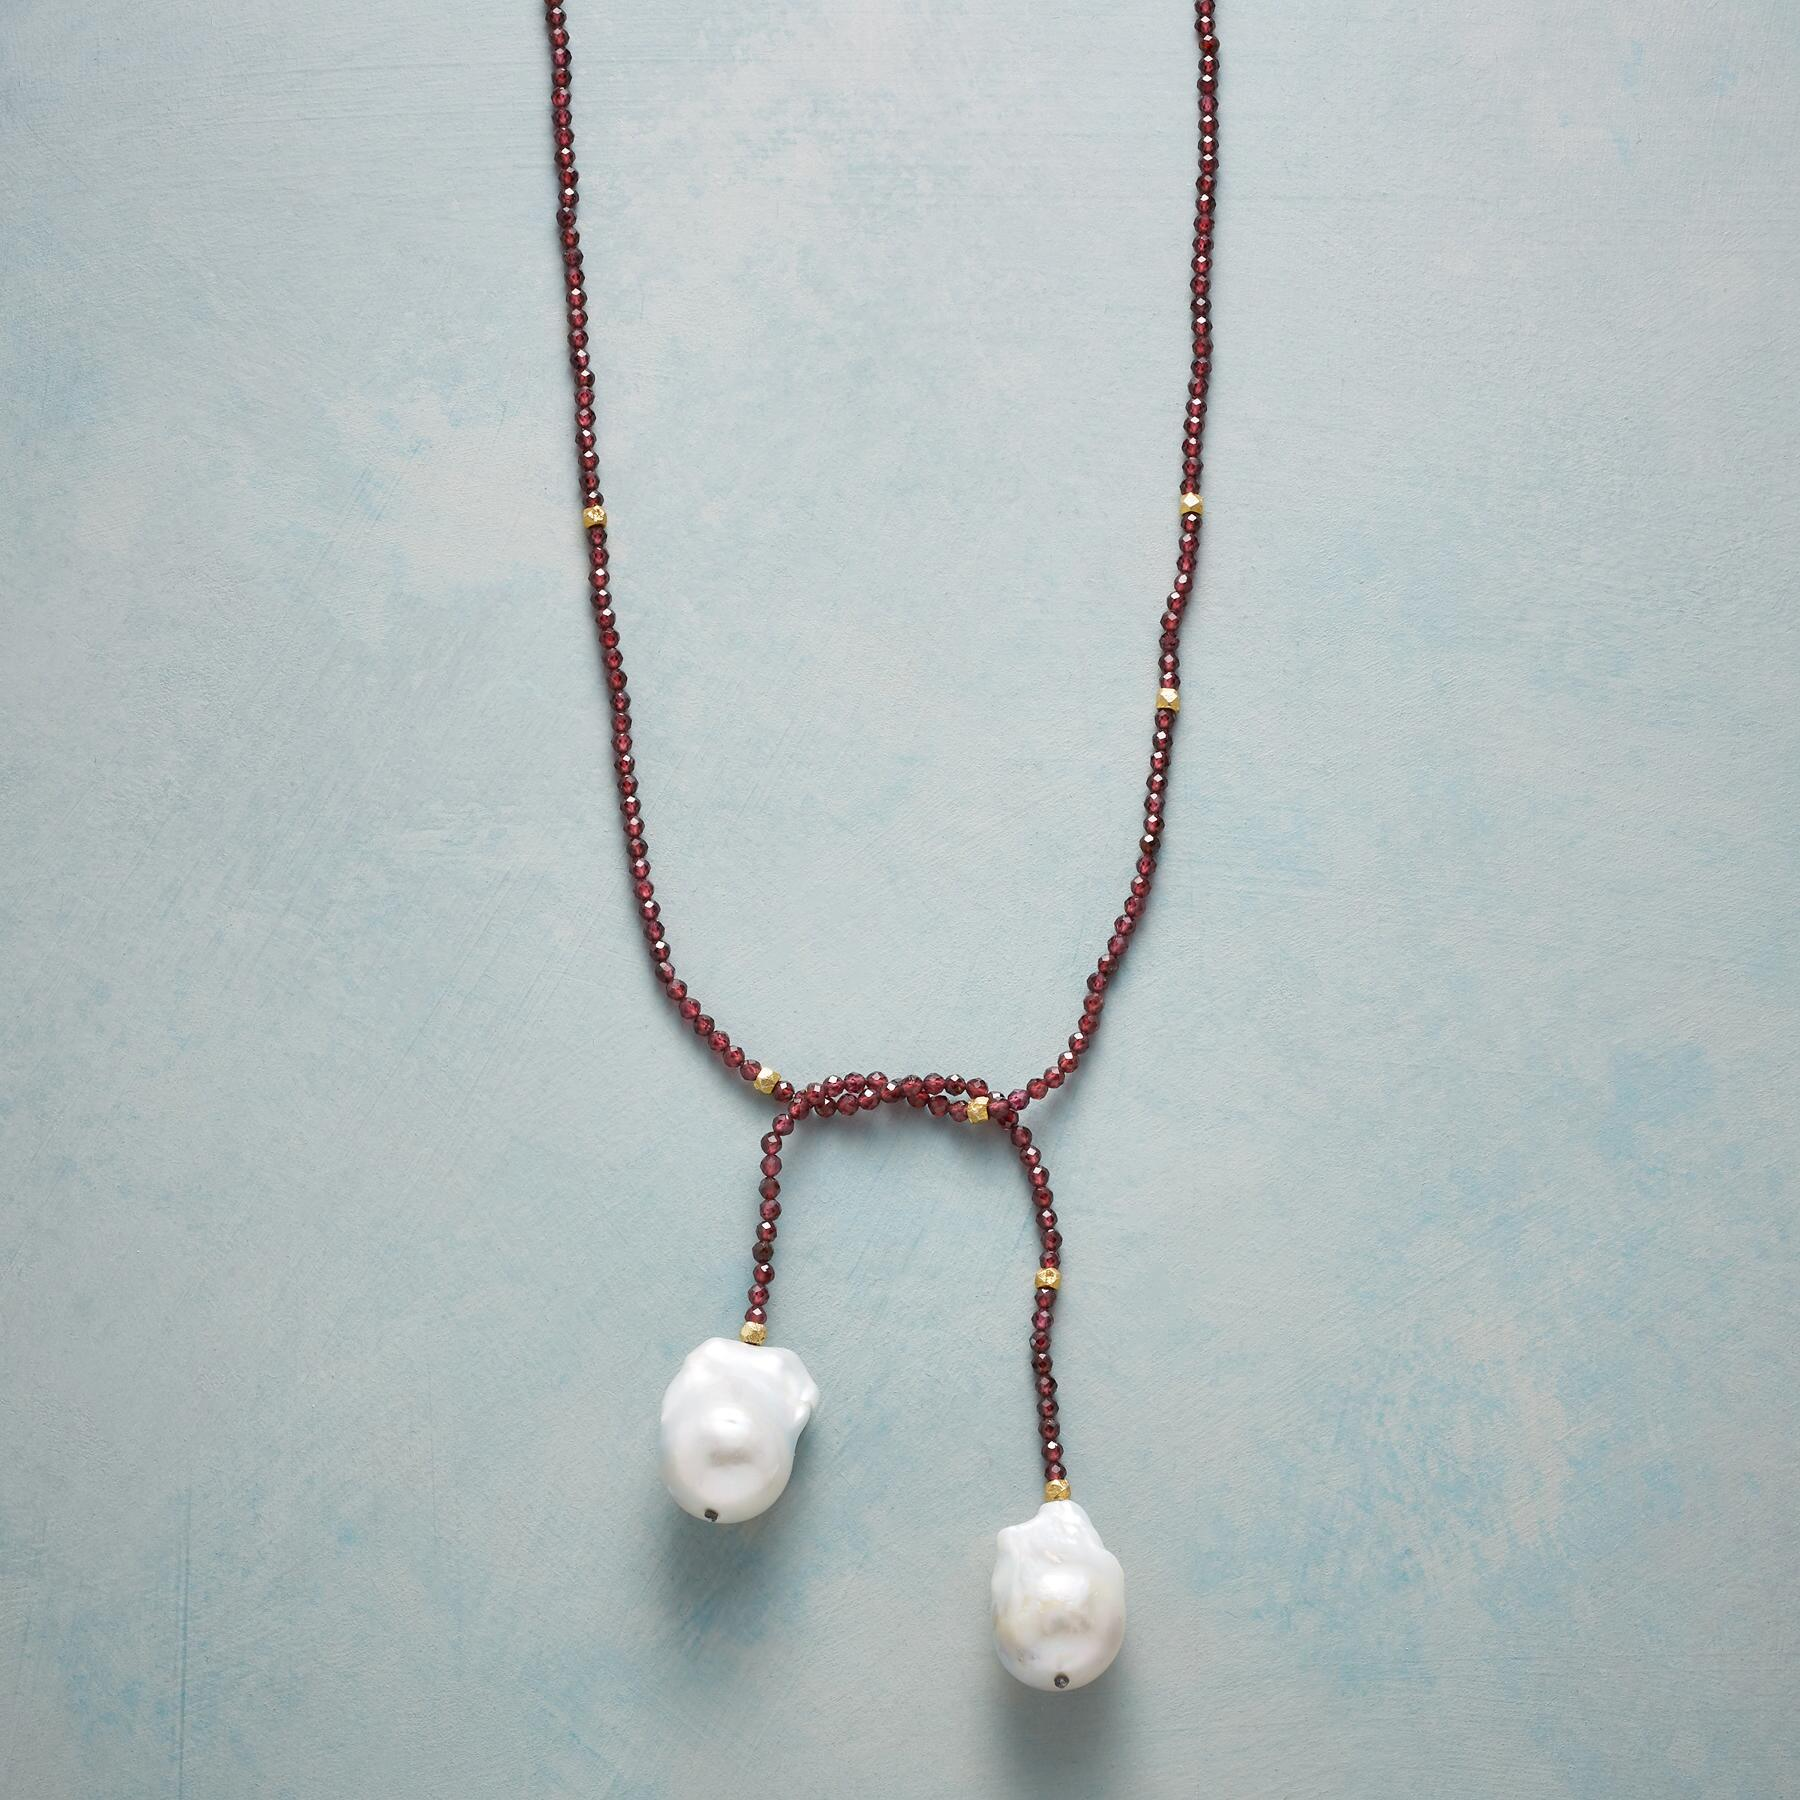 CREATIVE EXPRESSIONS NECKLACE: View 1